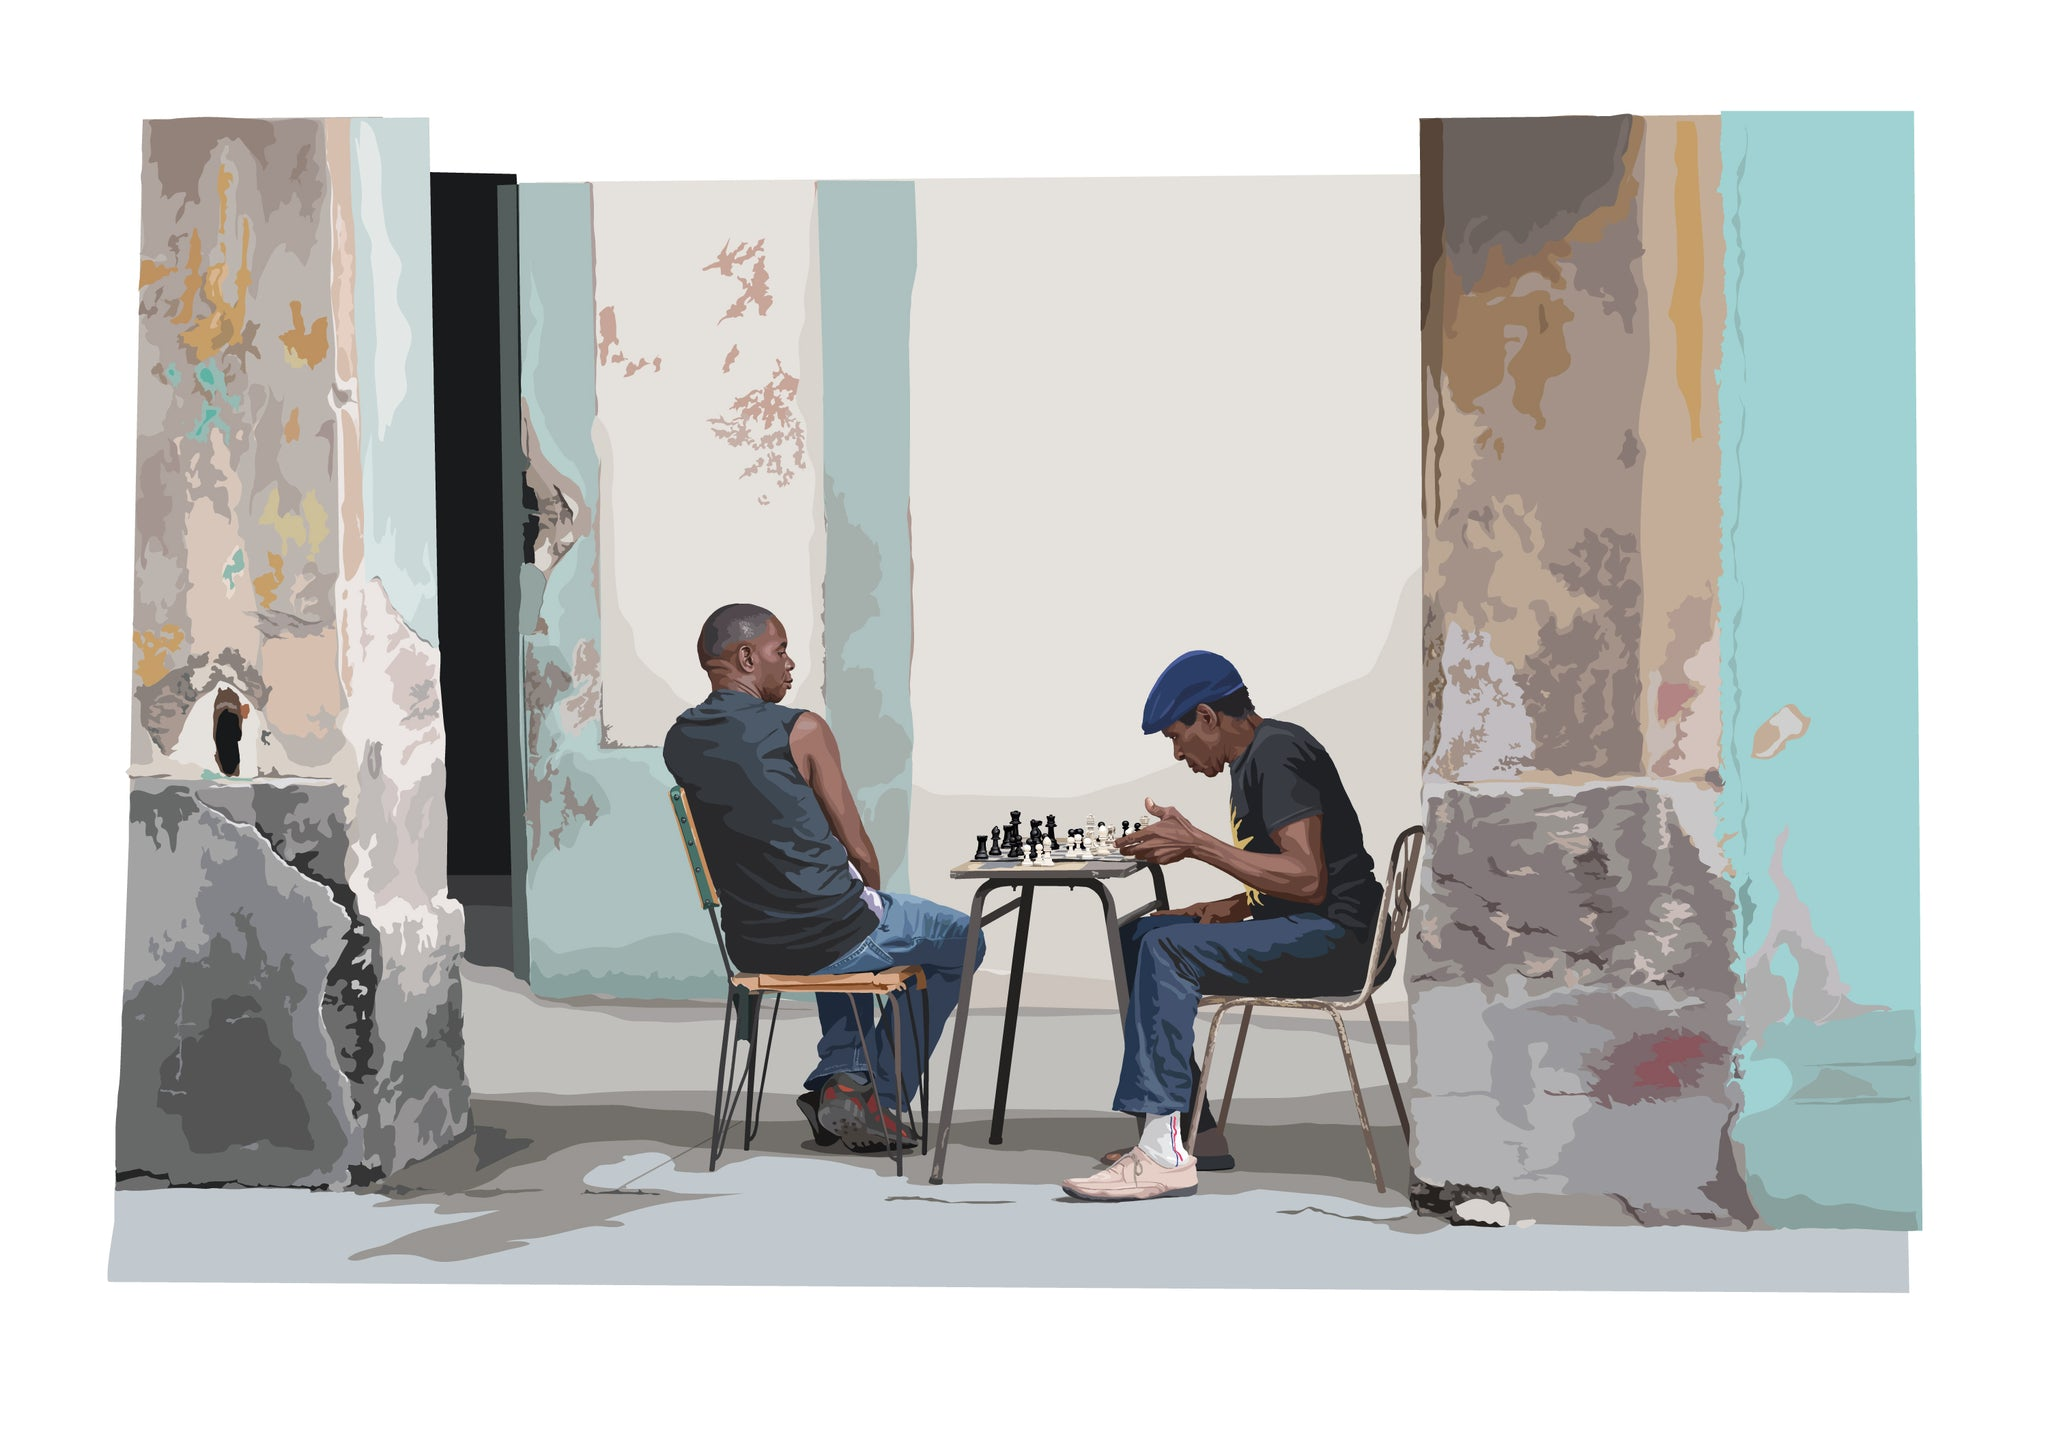 Limited edition print ' Chess match' in the back streets of Havana, Cuba.